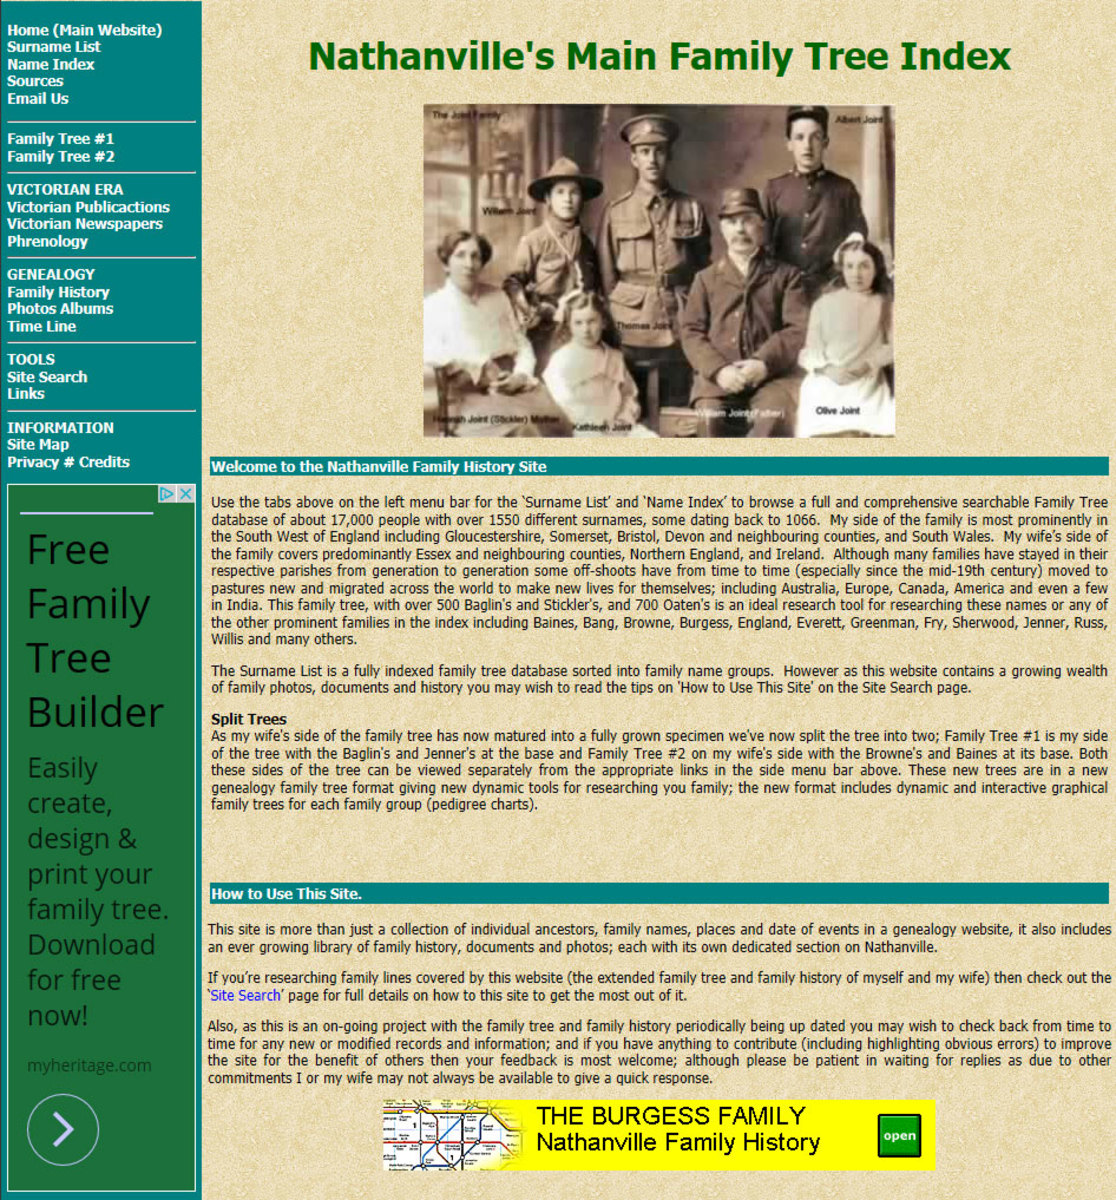 Choosing the Best Family Tree Software | HubPages